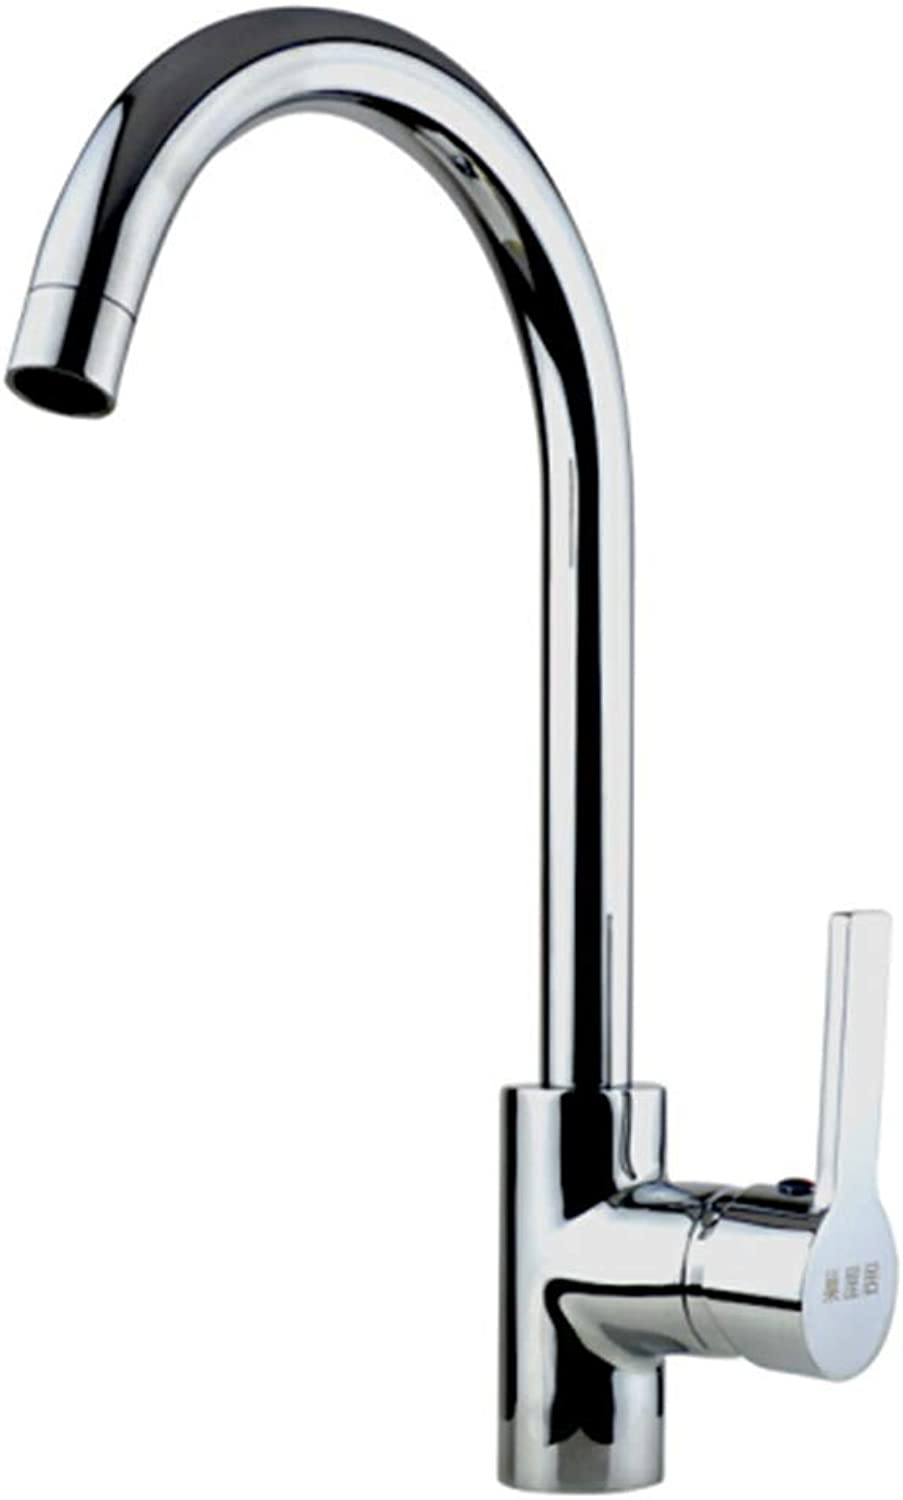 Kitchen Faucet Tapstainless Steelkitchen Faucet Probathroom Kitchen Faucet Copper Hot and Cold Water Dishwasher Sink Mixing Valve Kitchen Dishwasher redating Faucet